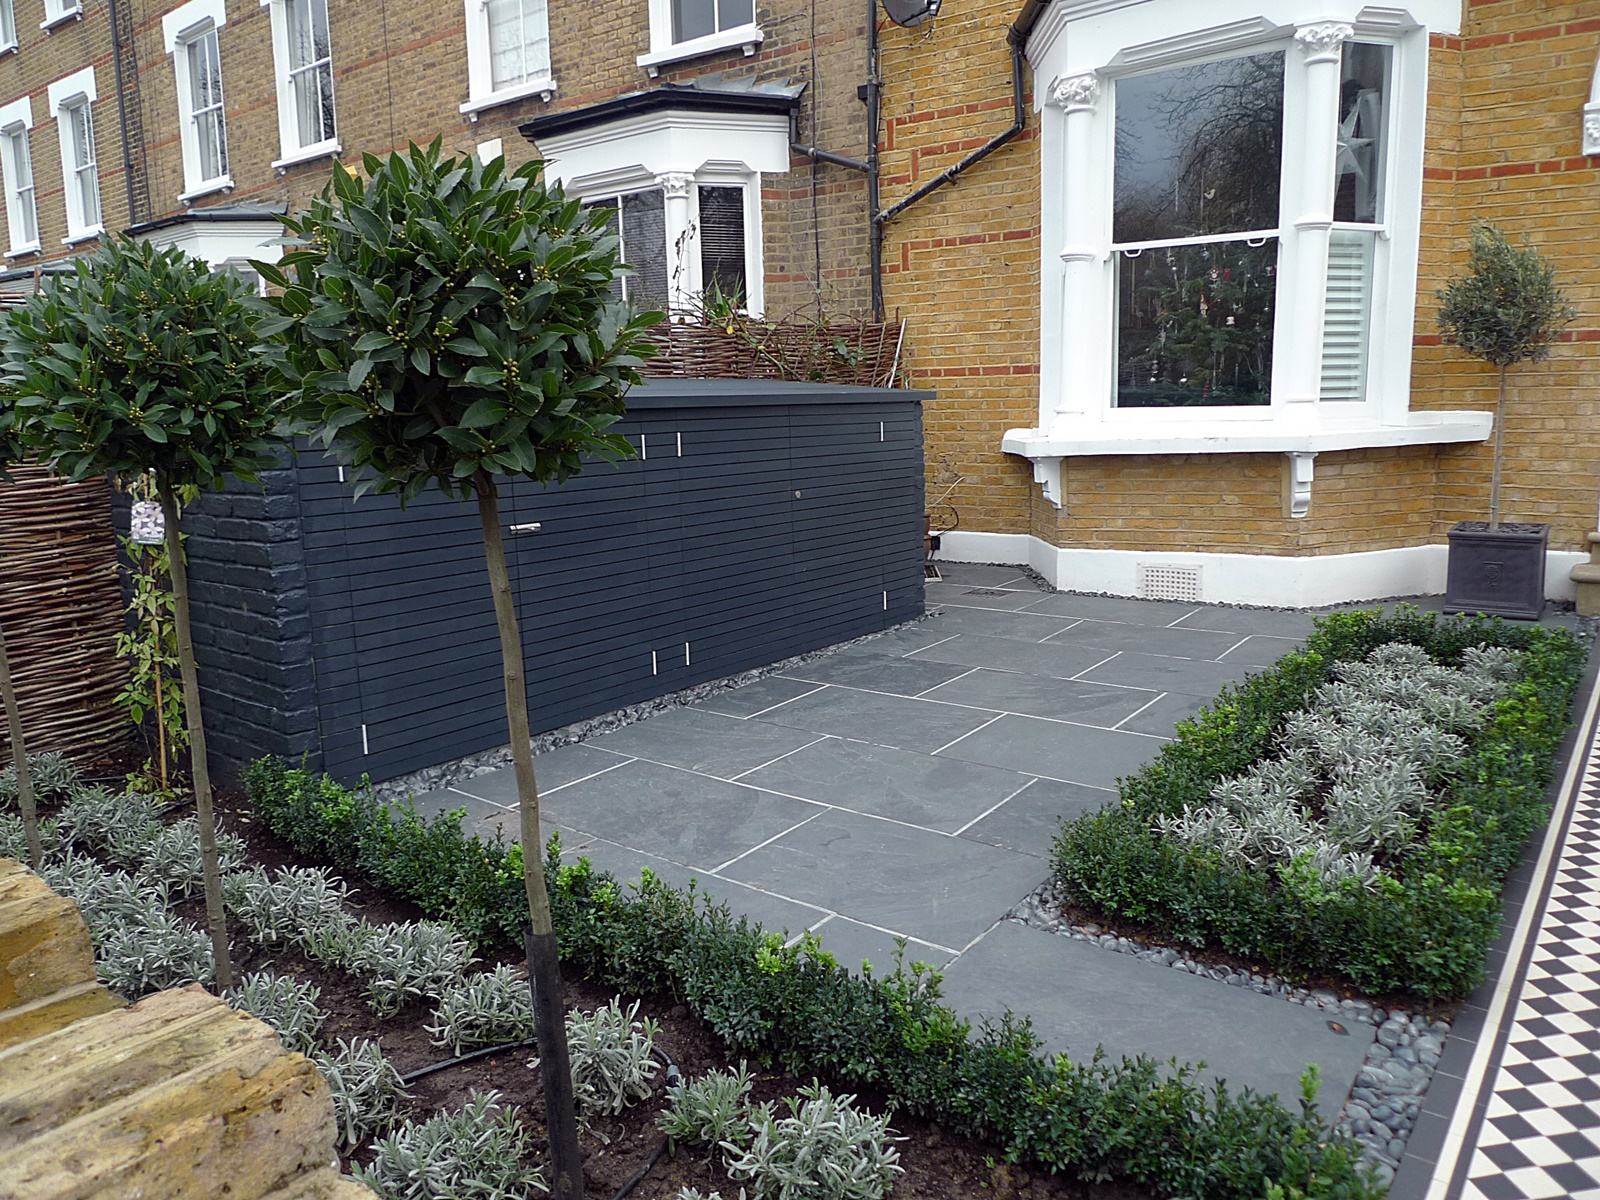 bespoke charcoal bin bike storage slate paving knot garden victorian mosaic tile path hackney islington southwark lambeth london